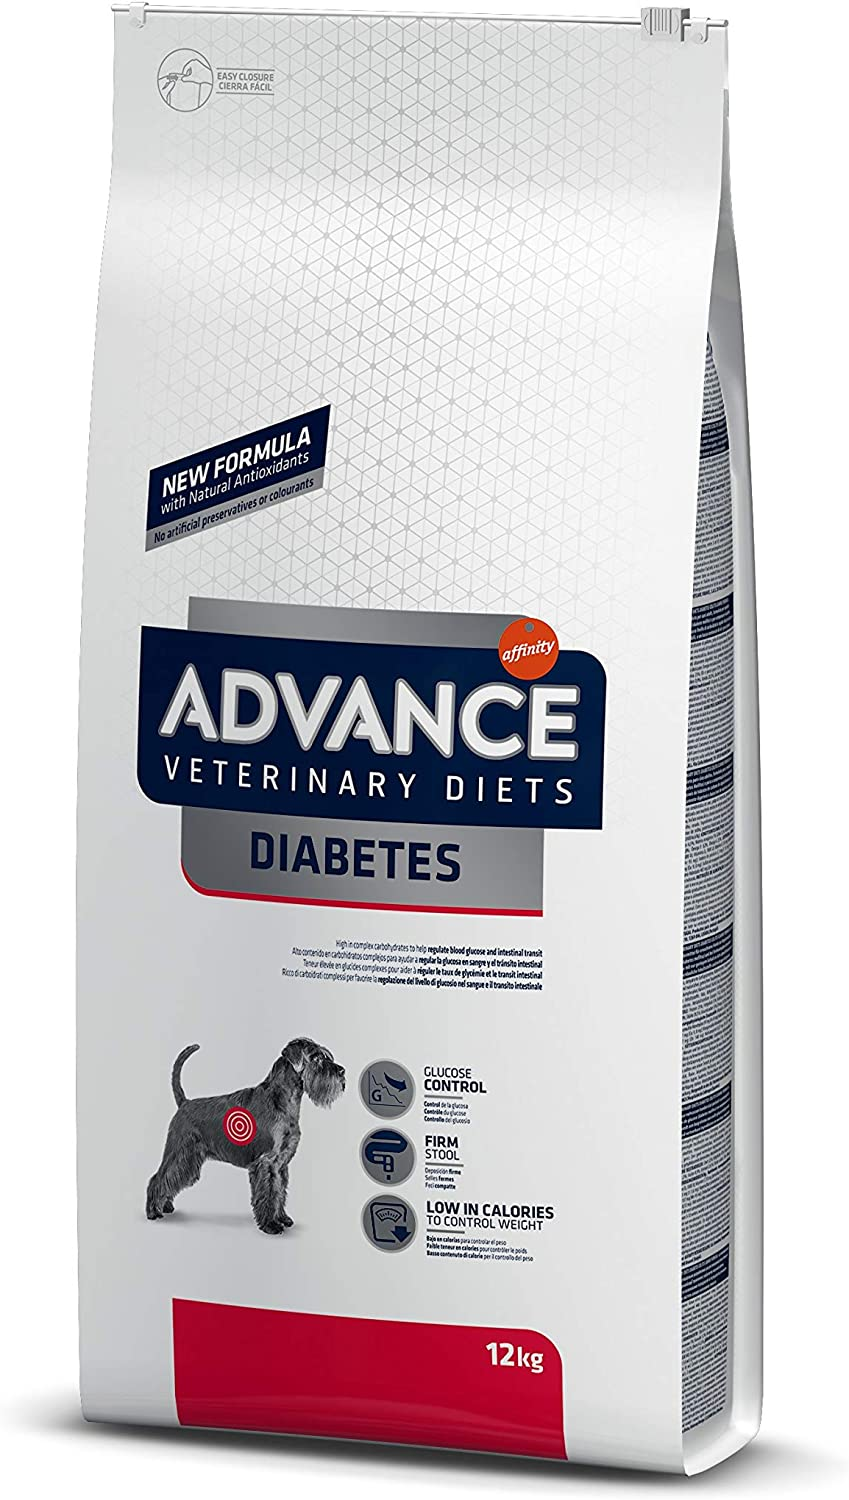 ADVANCE Veterinary Diets Diabetes Colitis - 12Kg